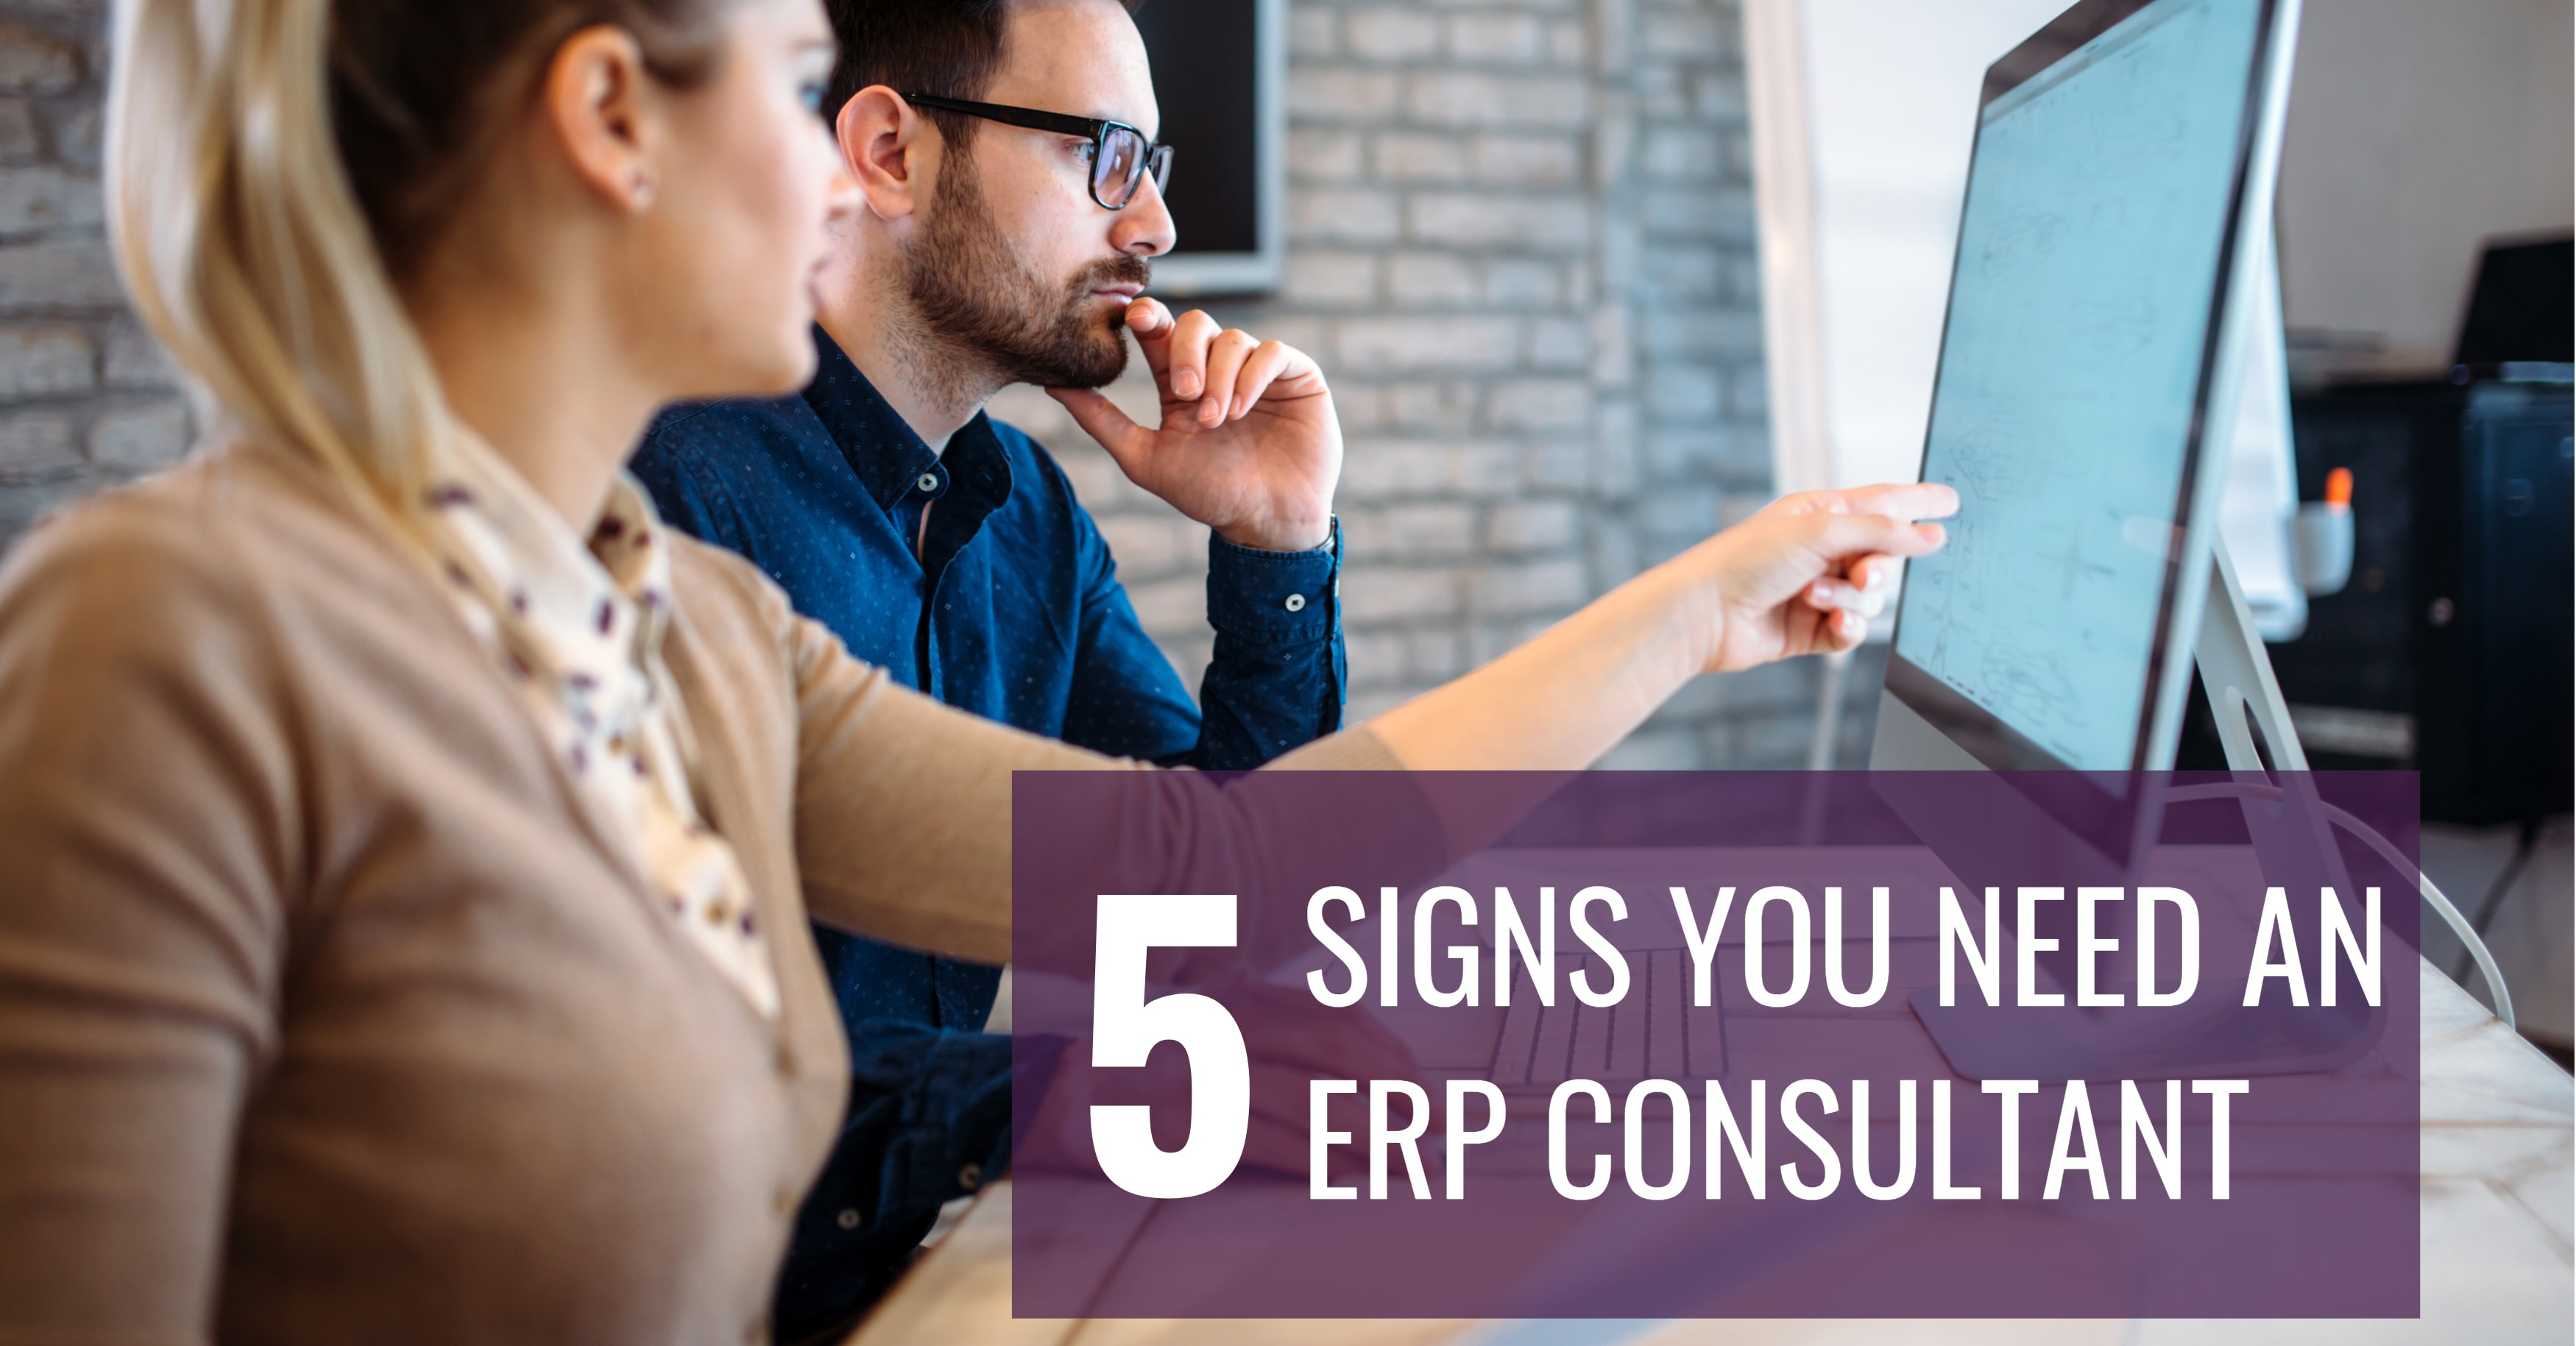 5 Signs You Need an ERP Consultant